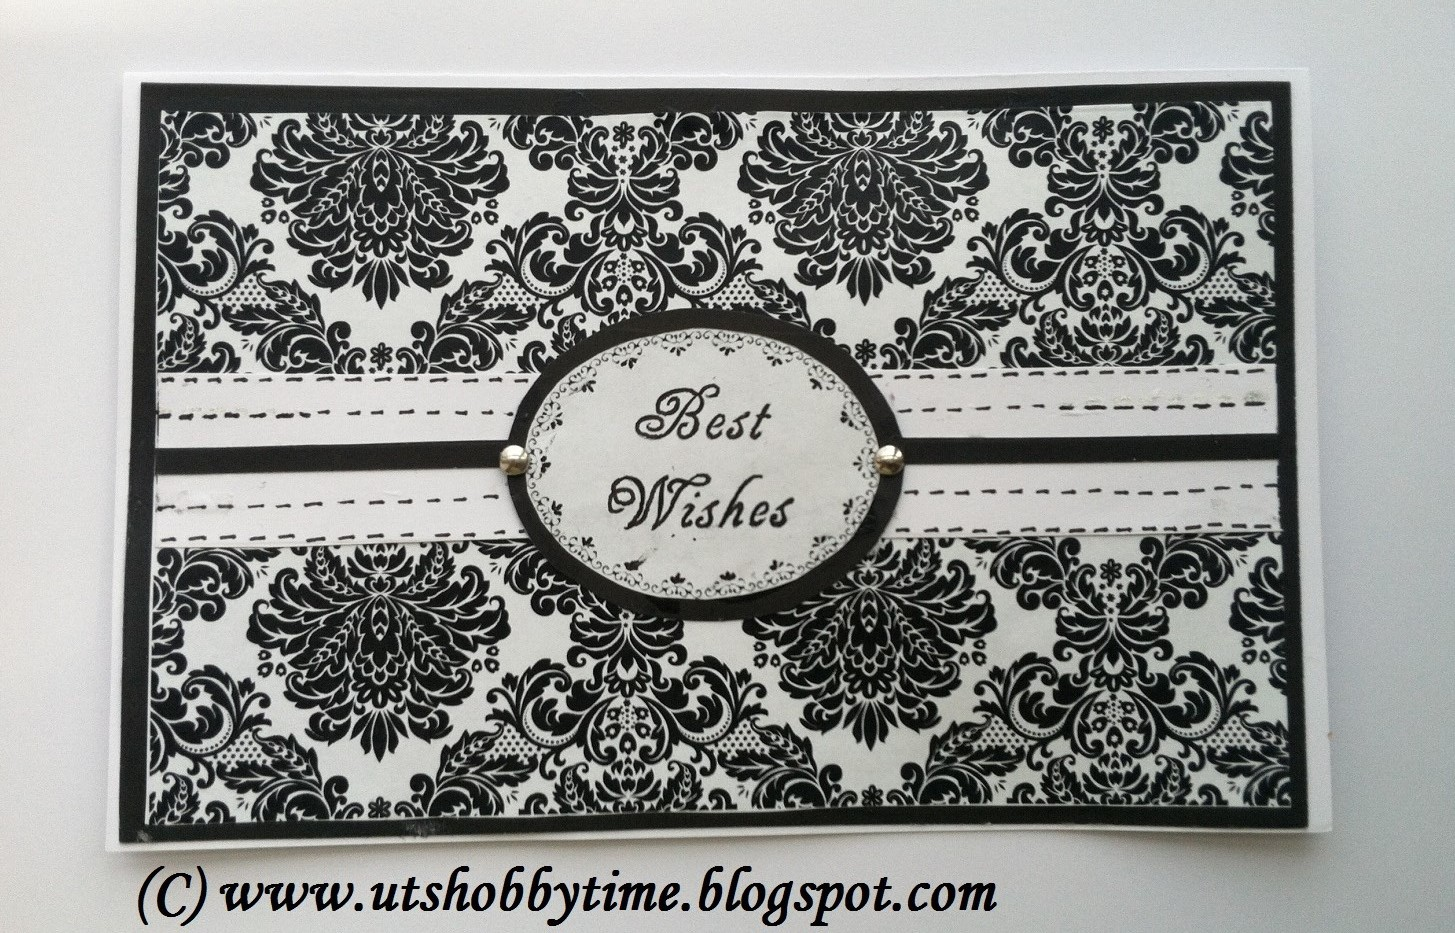 Uts hobby time handmade black white greeting card best wishes black and white best wishes greeting card using damask paper m4hsunfo